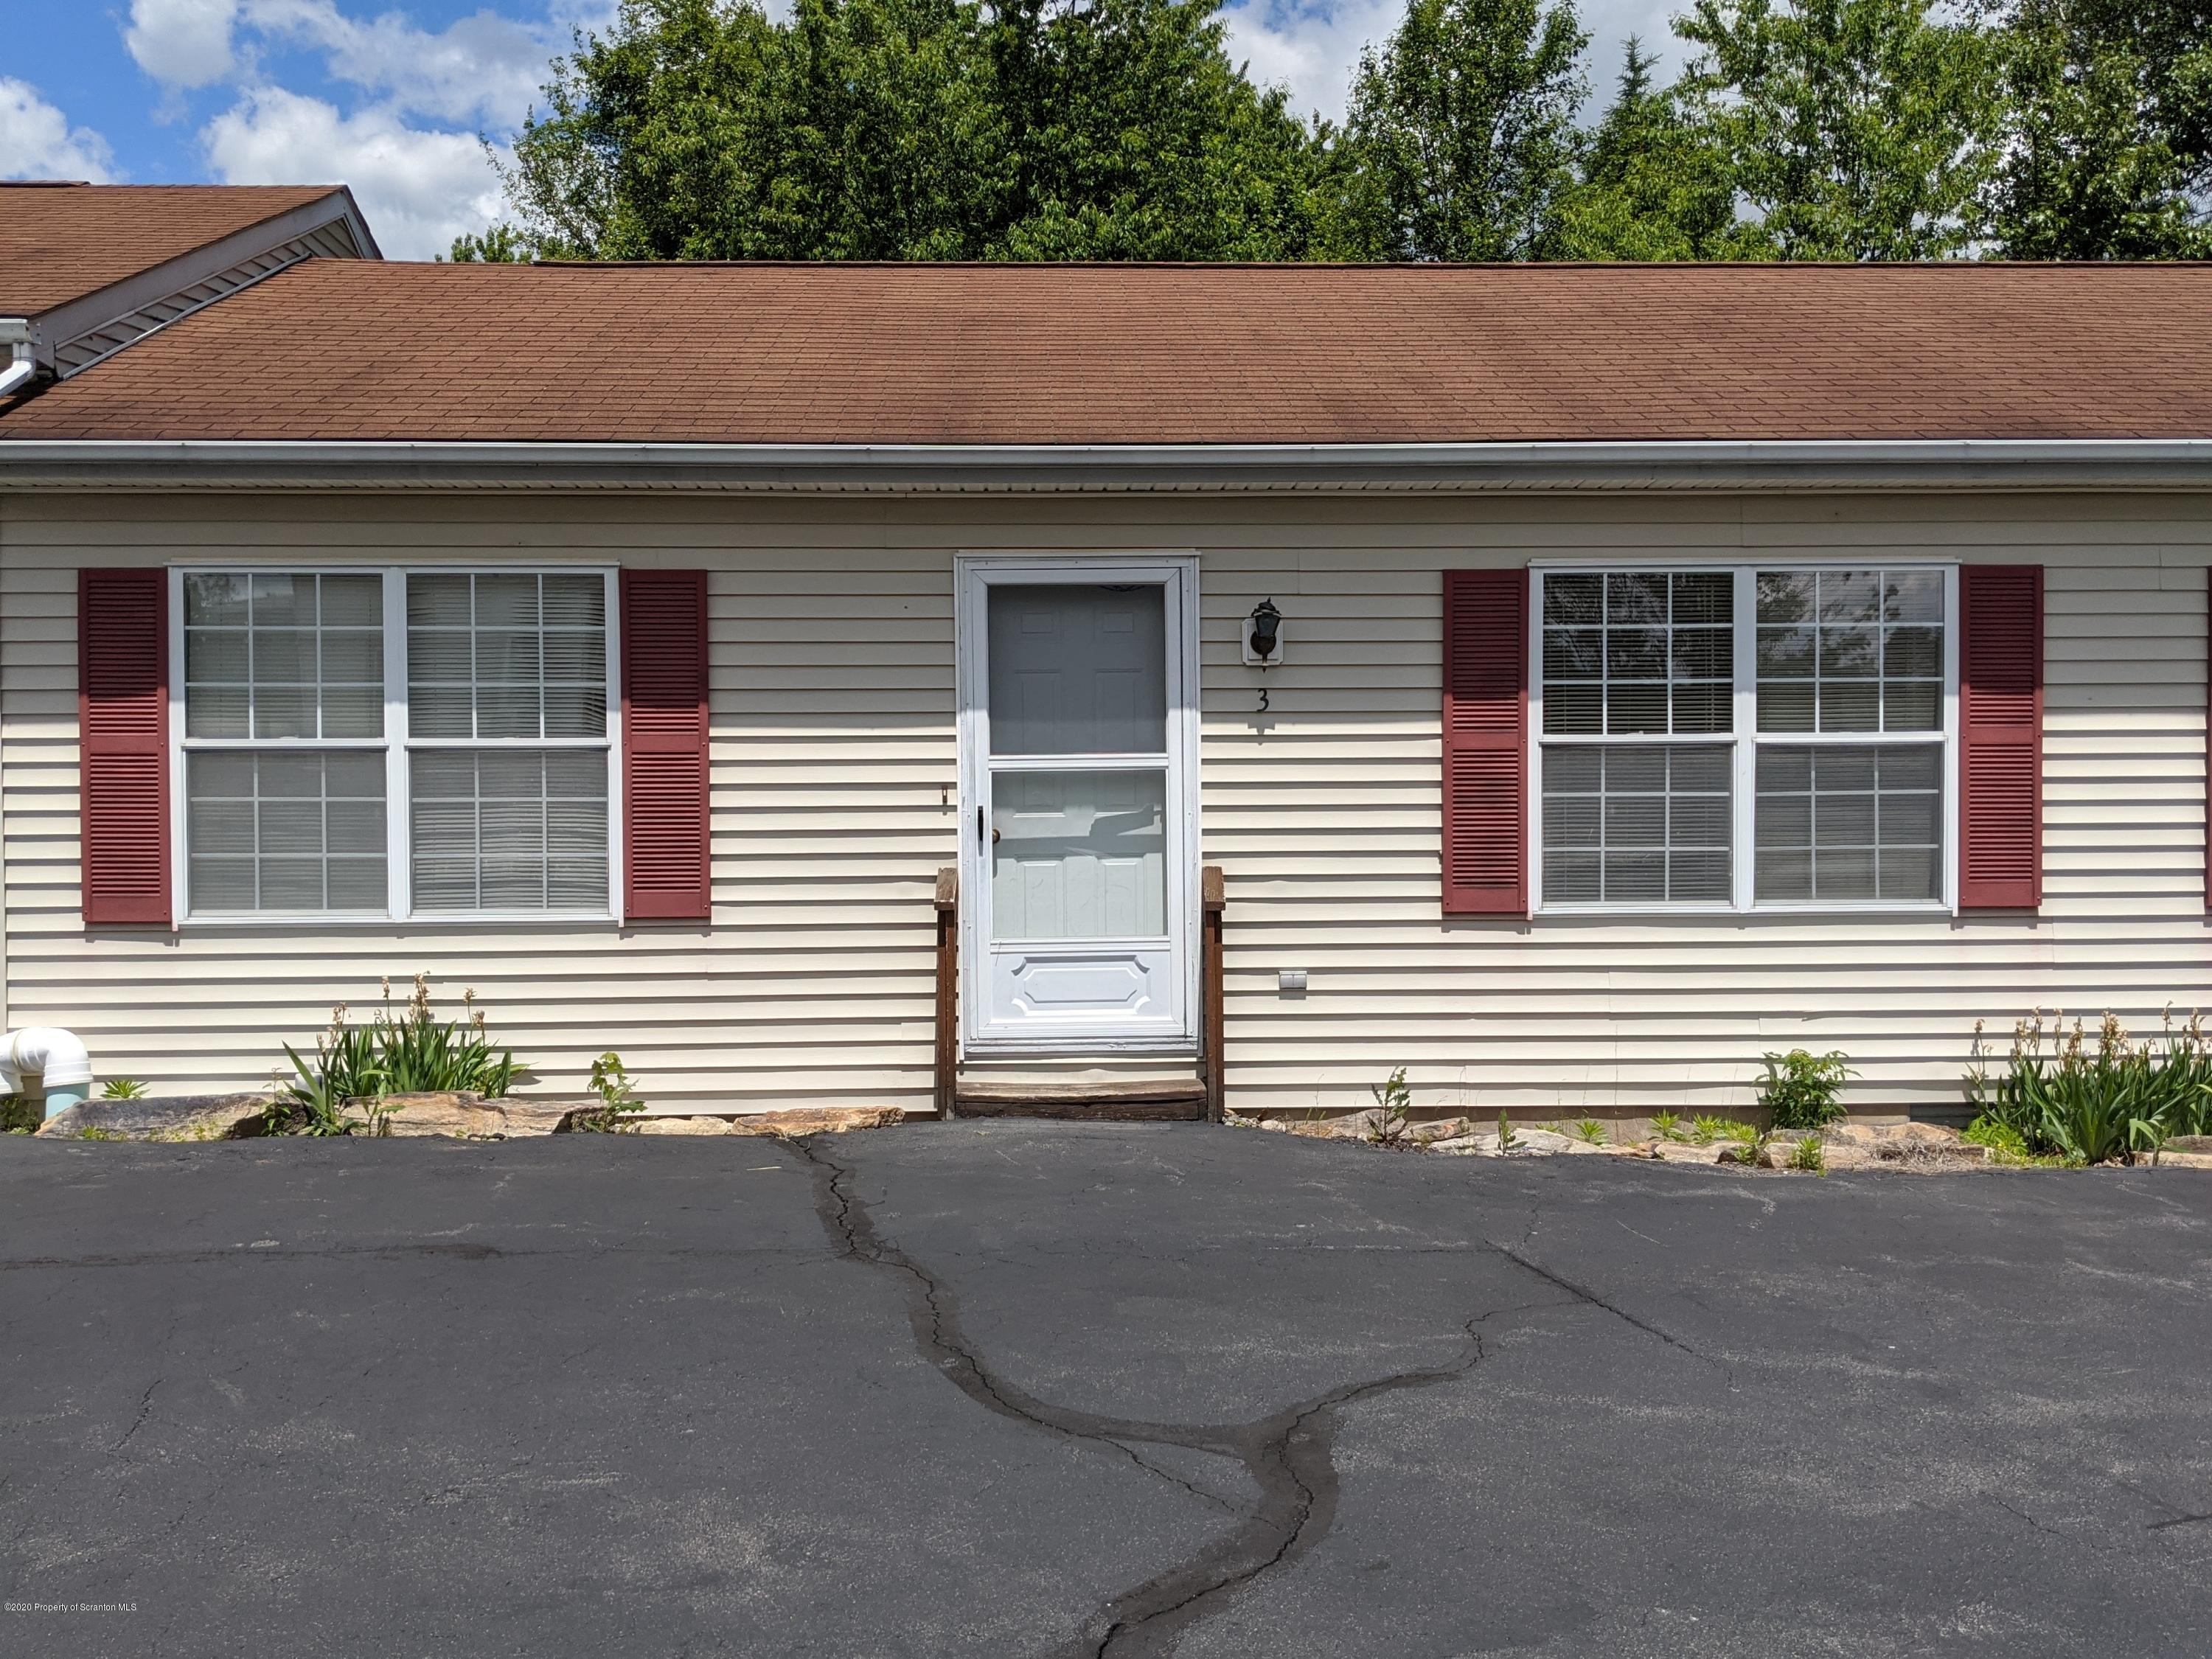 903 Sibley Ave, Old Forge, Pennsylvania 18518, 2 Bedrooms Bedrooms, 4 Rooms Rooms,1 BathroomBathrooms,Rental,For Lease,Sibley,20-2554